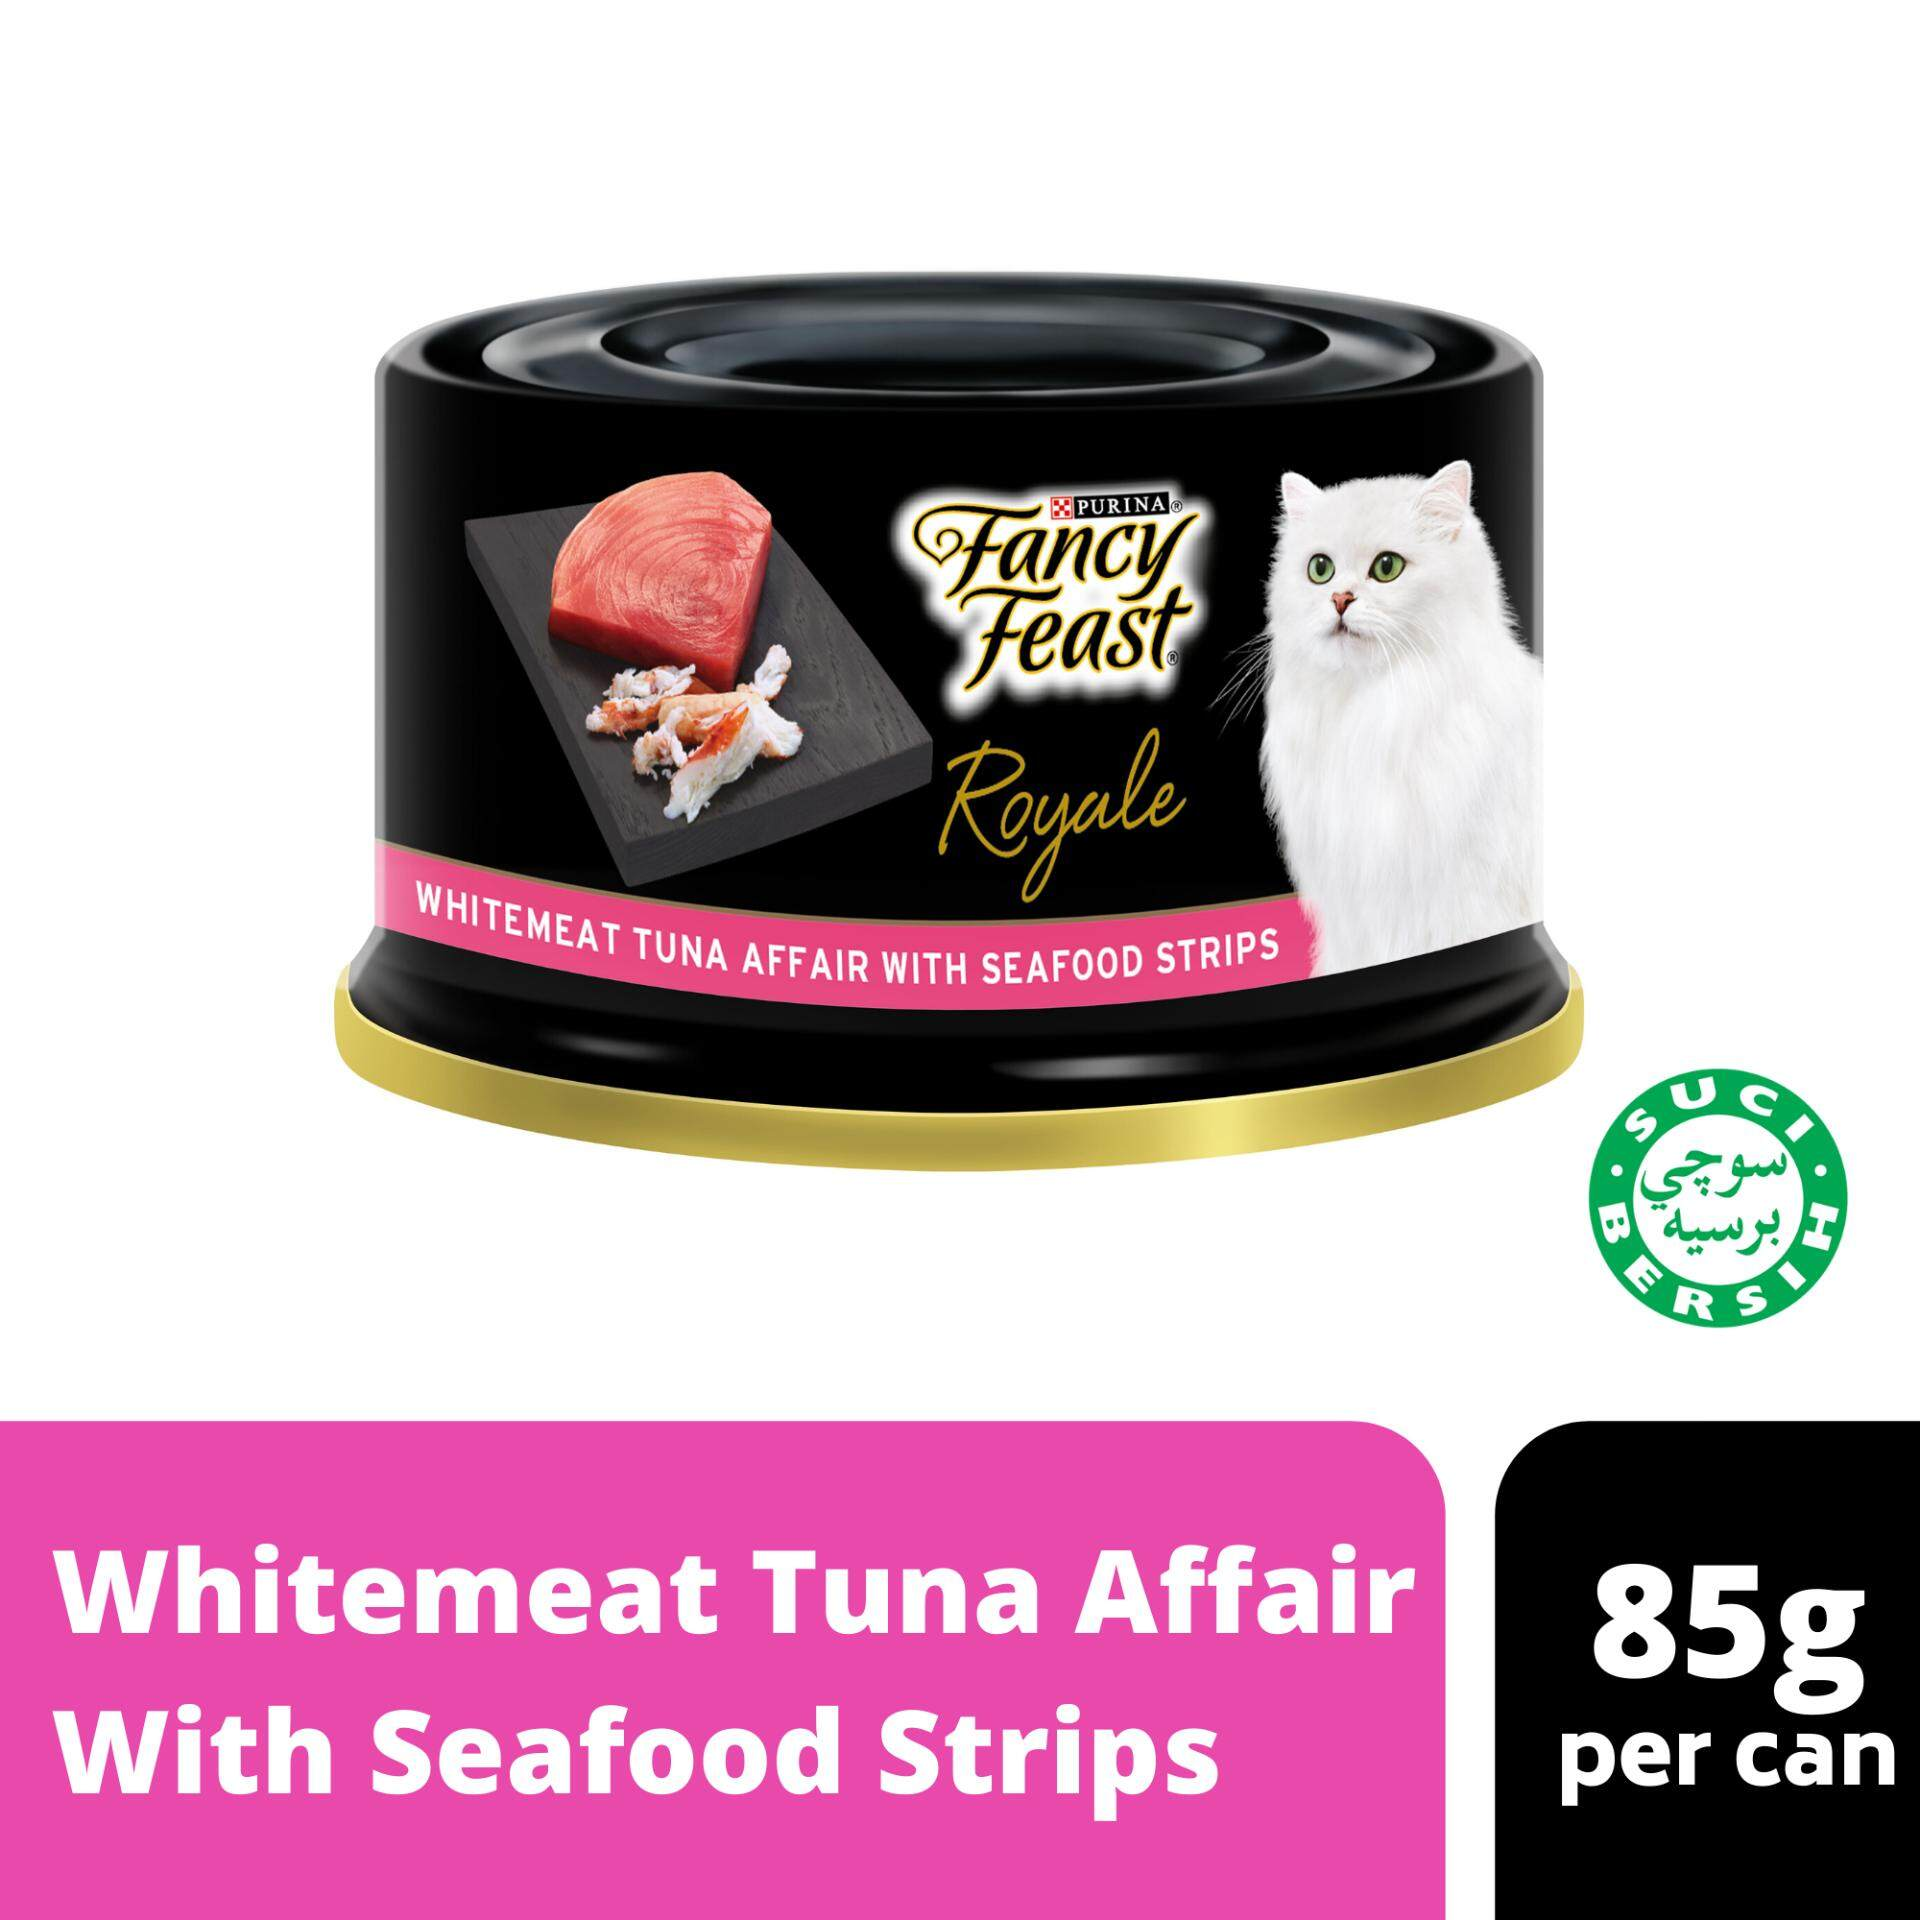 Fancy Feast Royale Whitemeat Tuna Affair With Seafood Strips Wet Cat Food Can (1 x 85g)